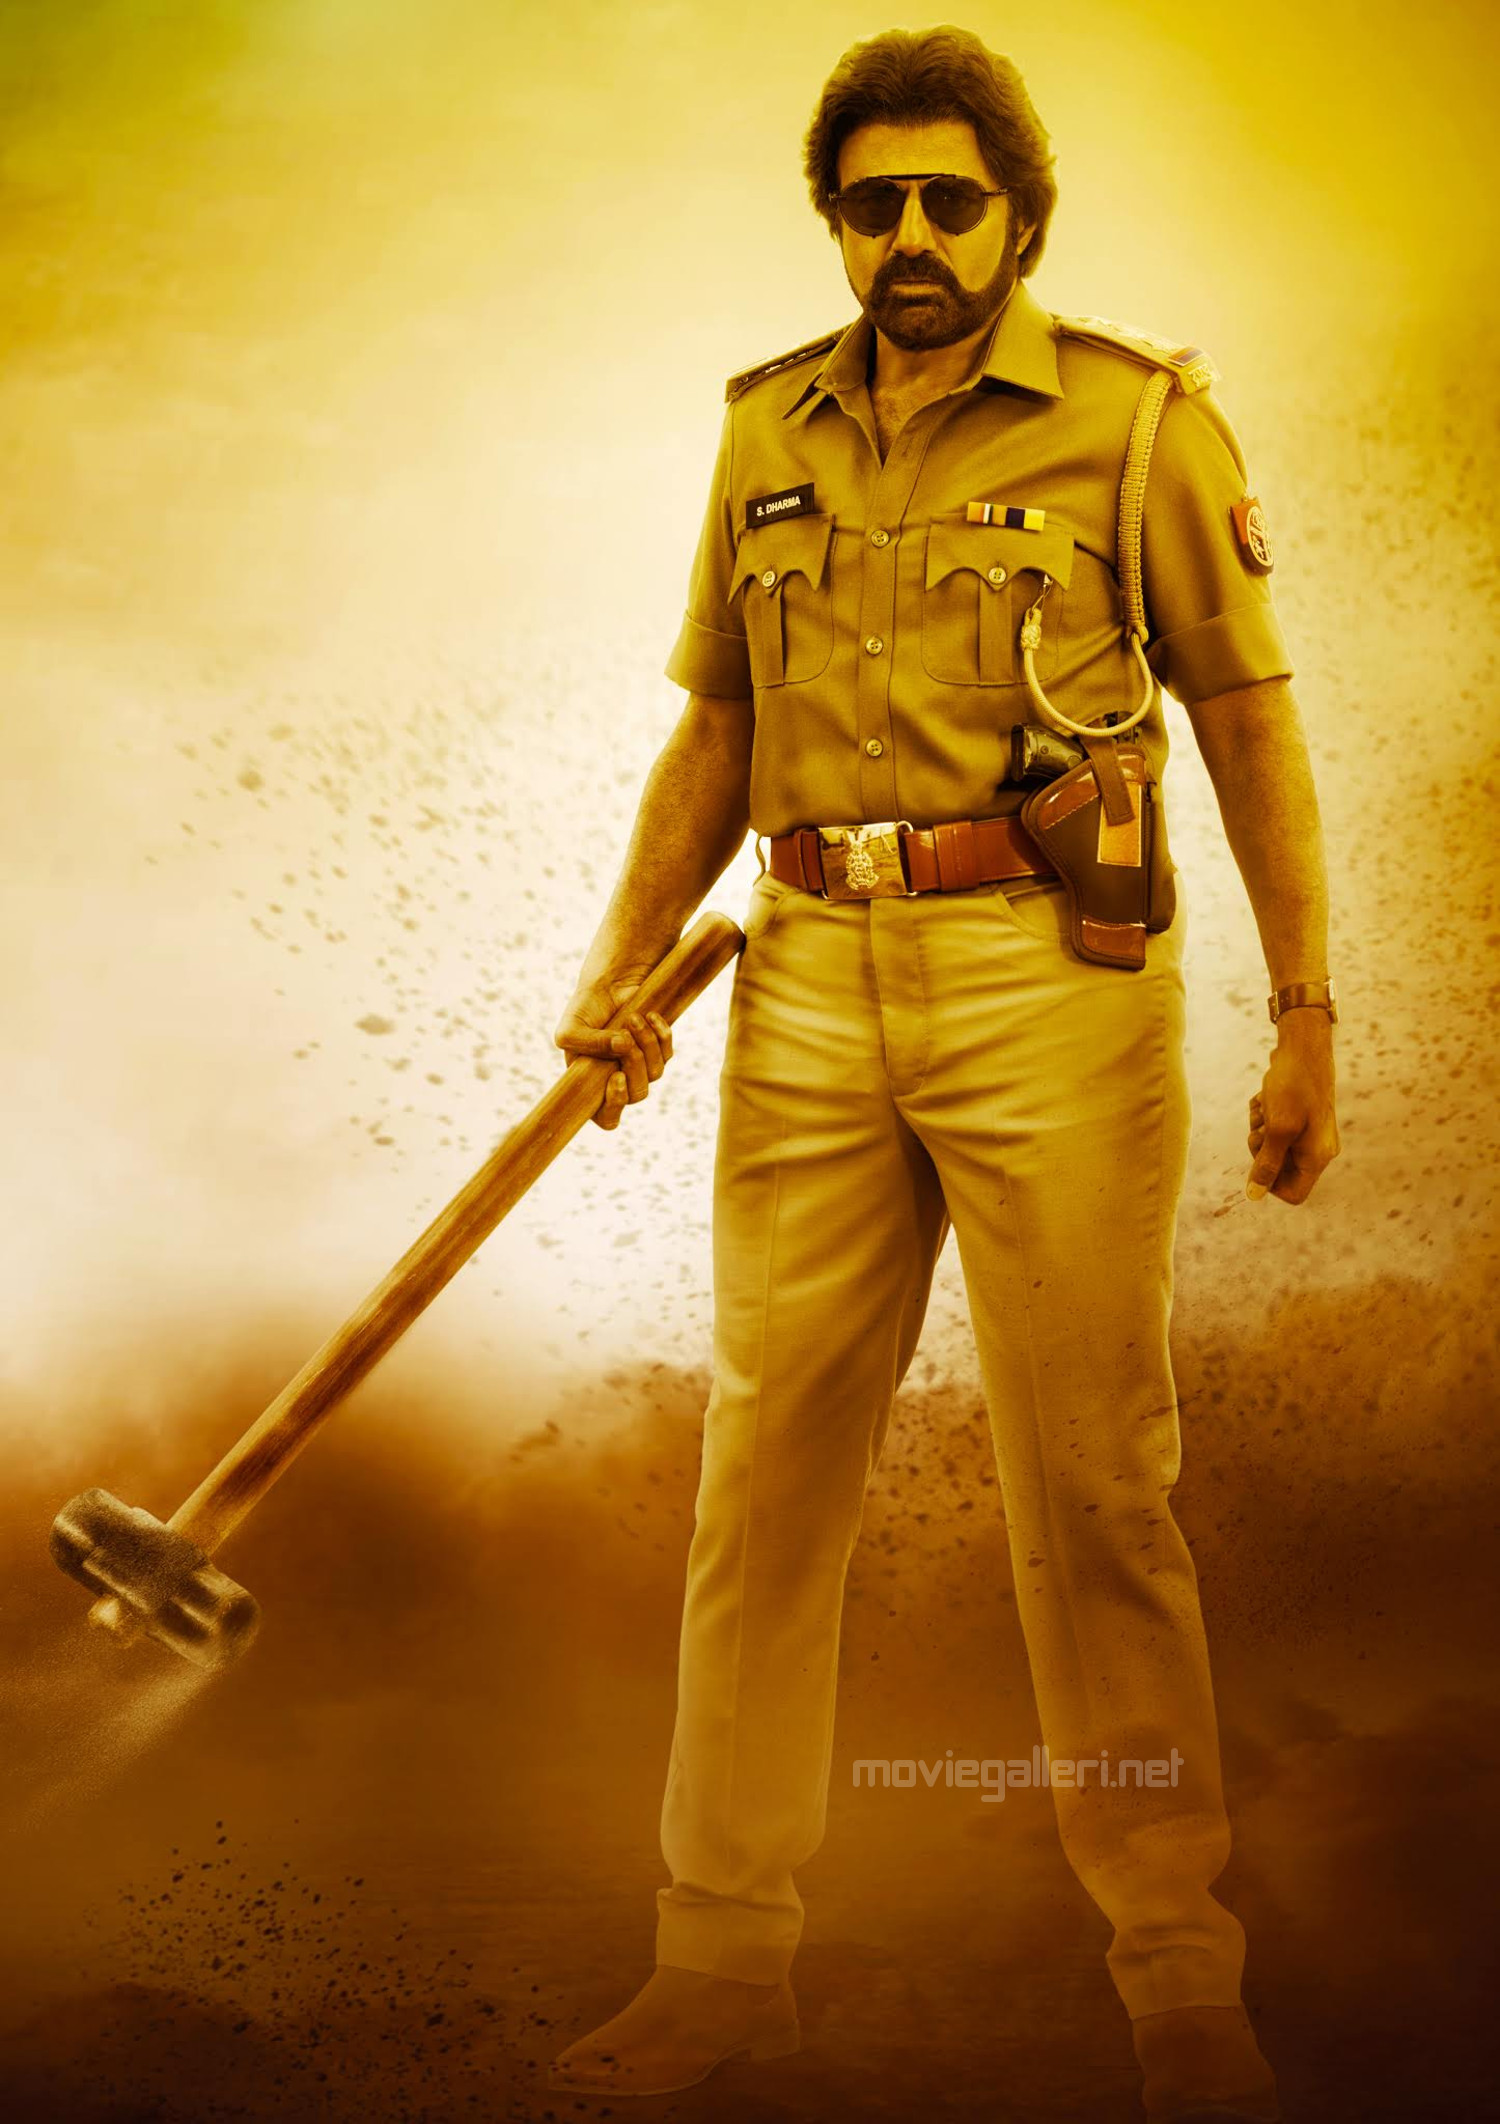 RULER Movie Balakrishna First Look Images HD